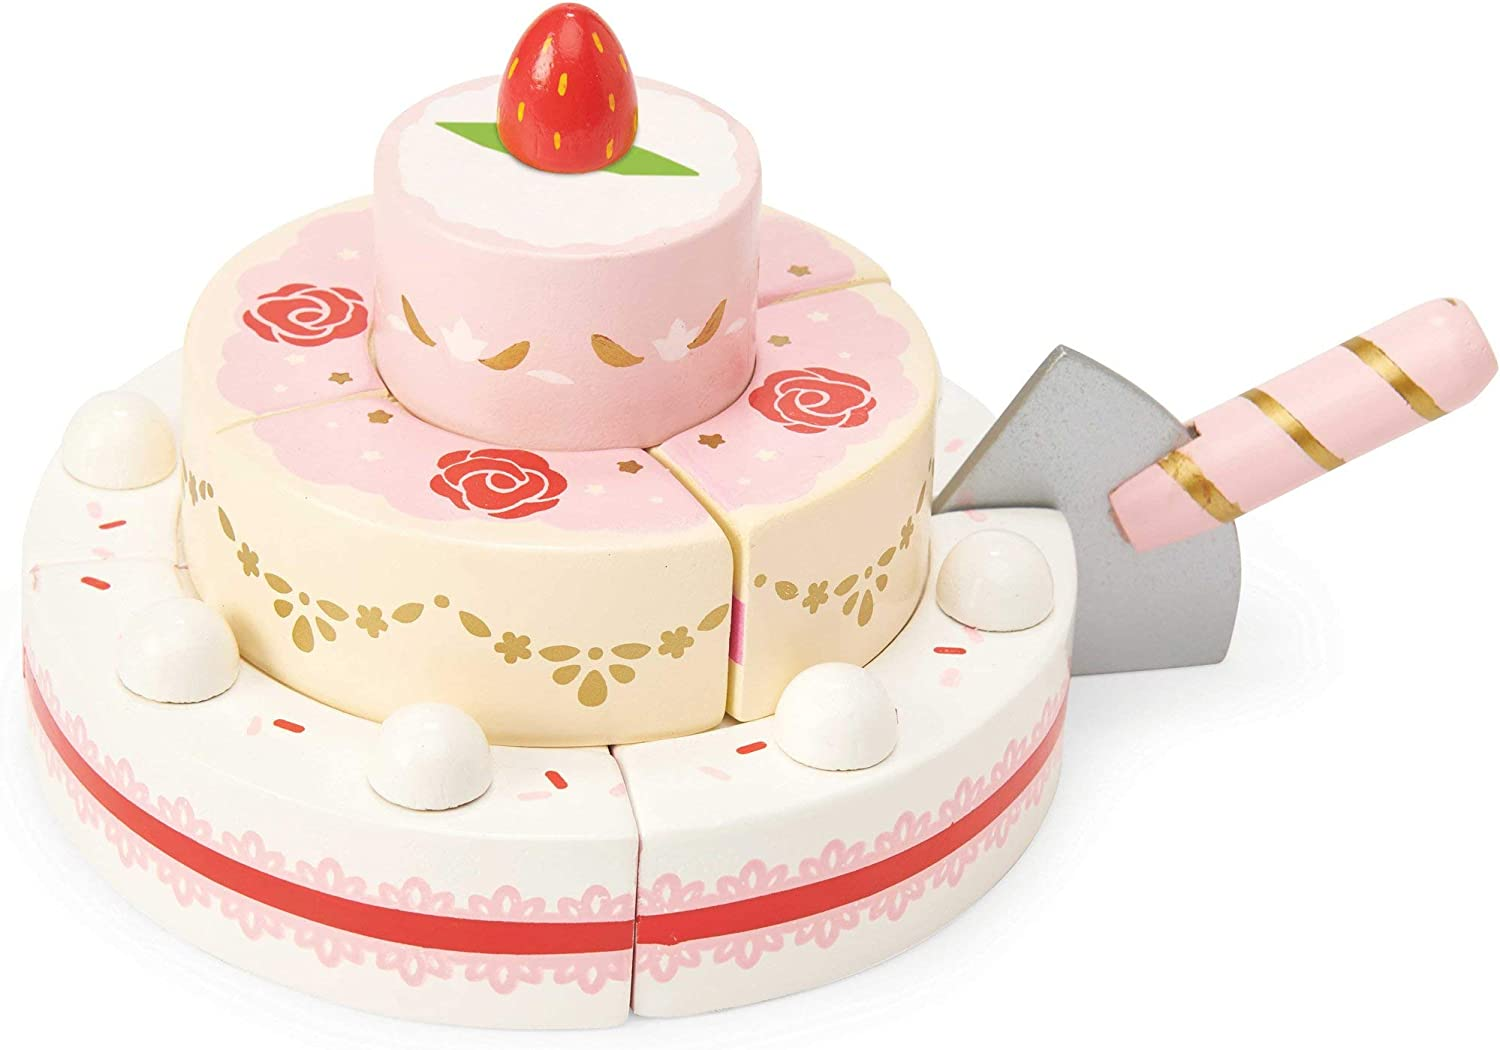 Le Toy Van - Childrens Wooden Honeybake Strawberry Wedding Cake Food Pretend Toy | Girls Birthday Cake Or Afternoon Tea Role Play Toy, Multi